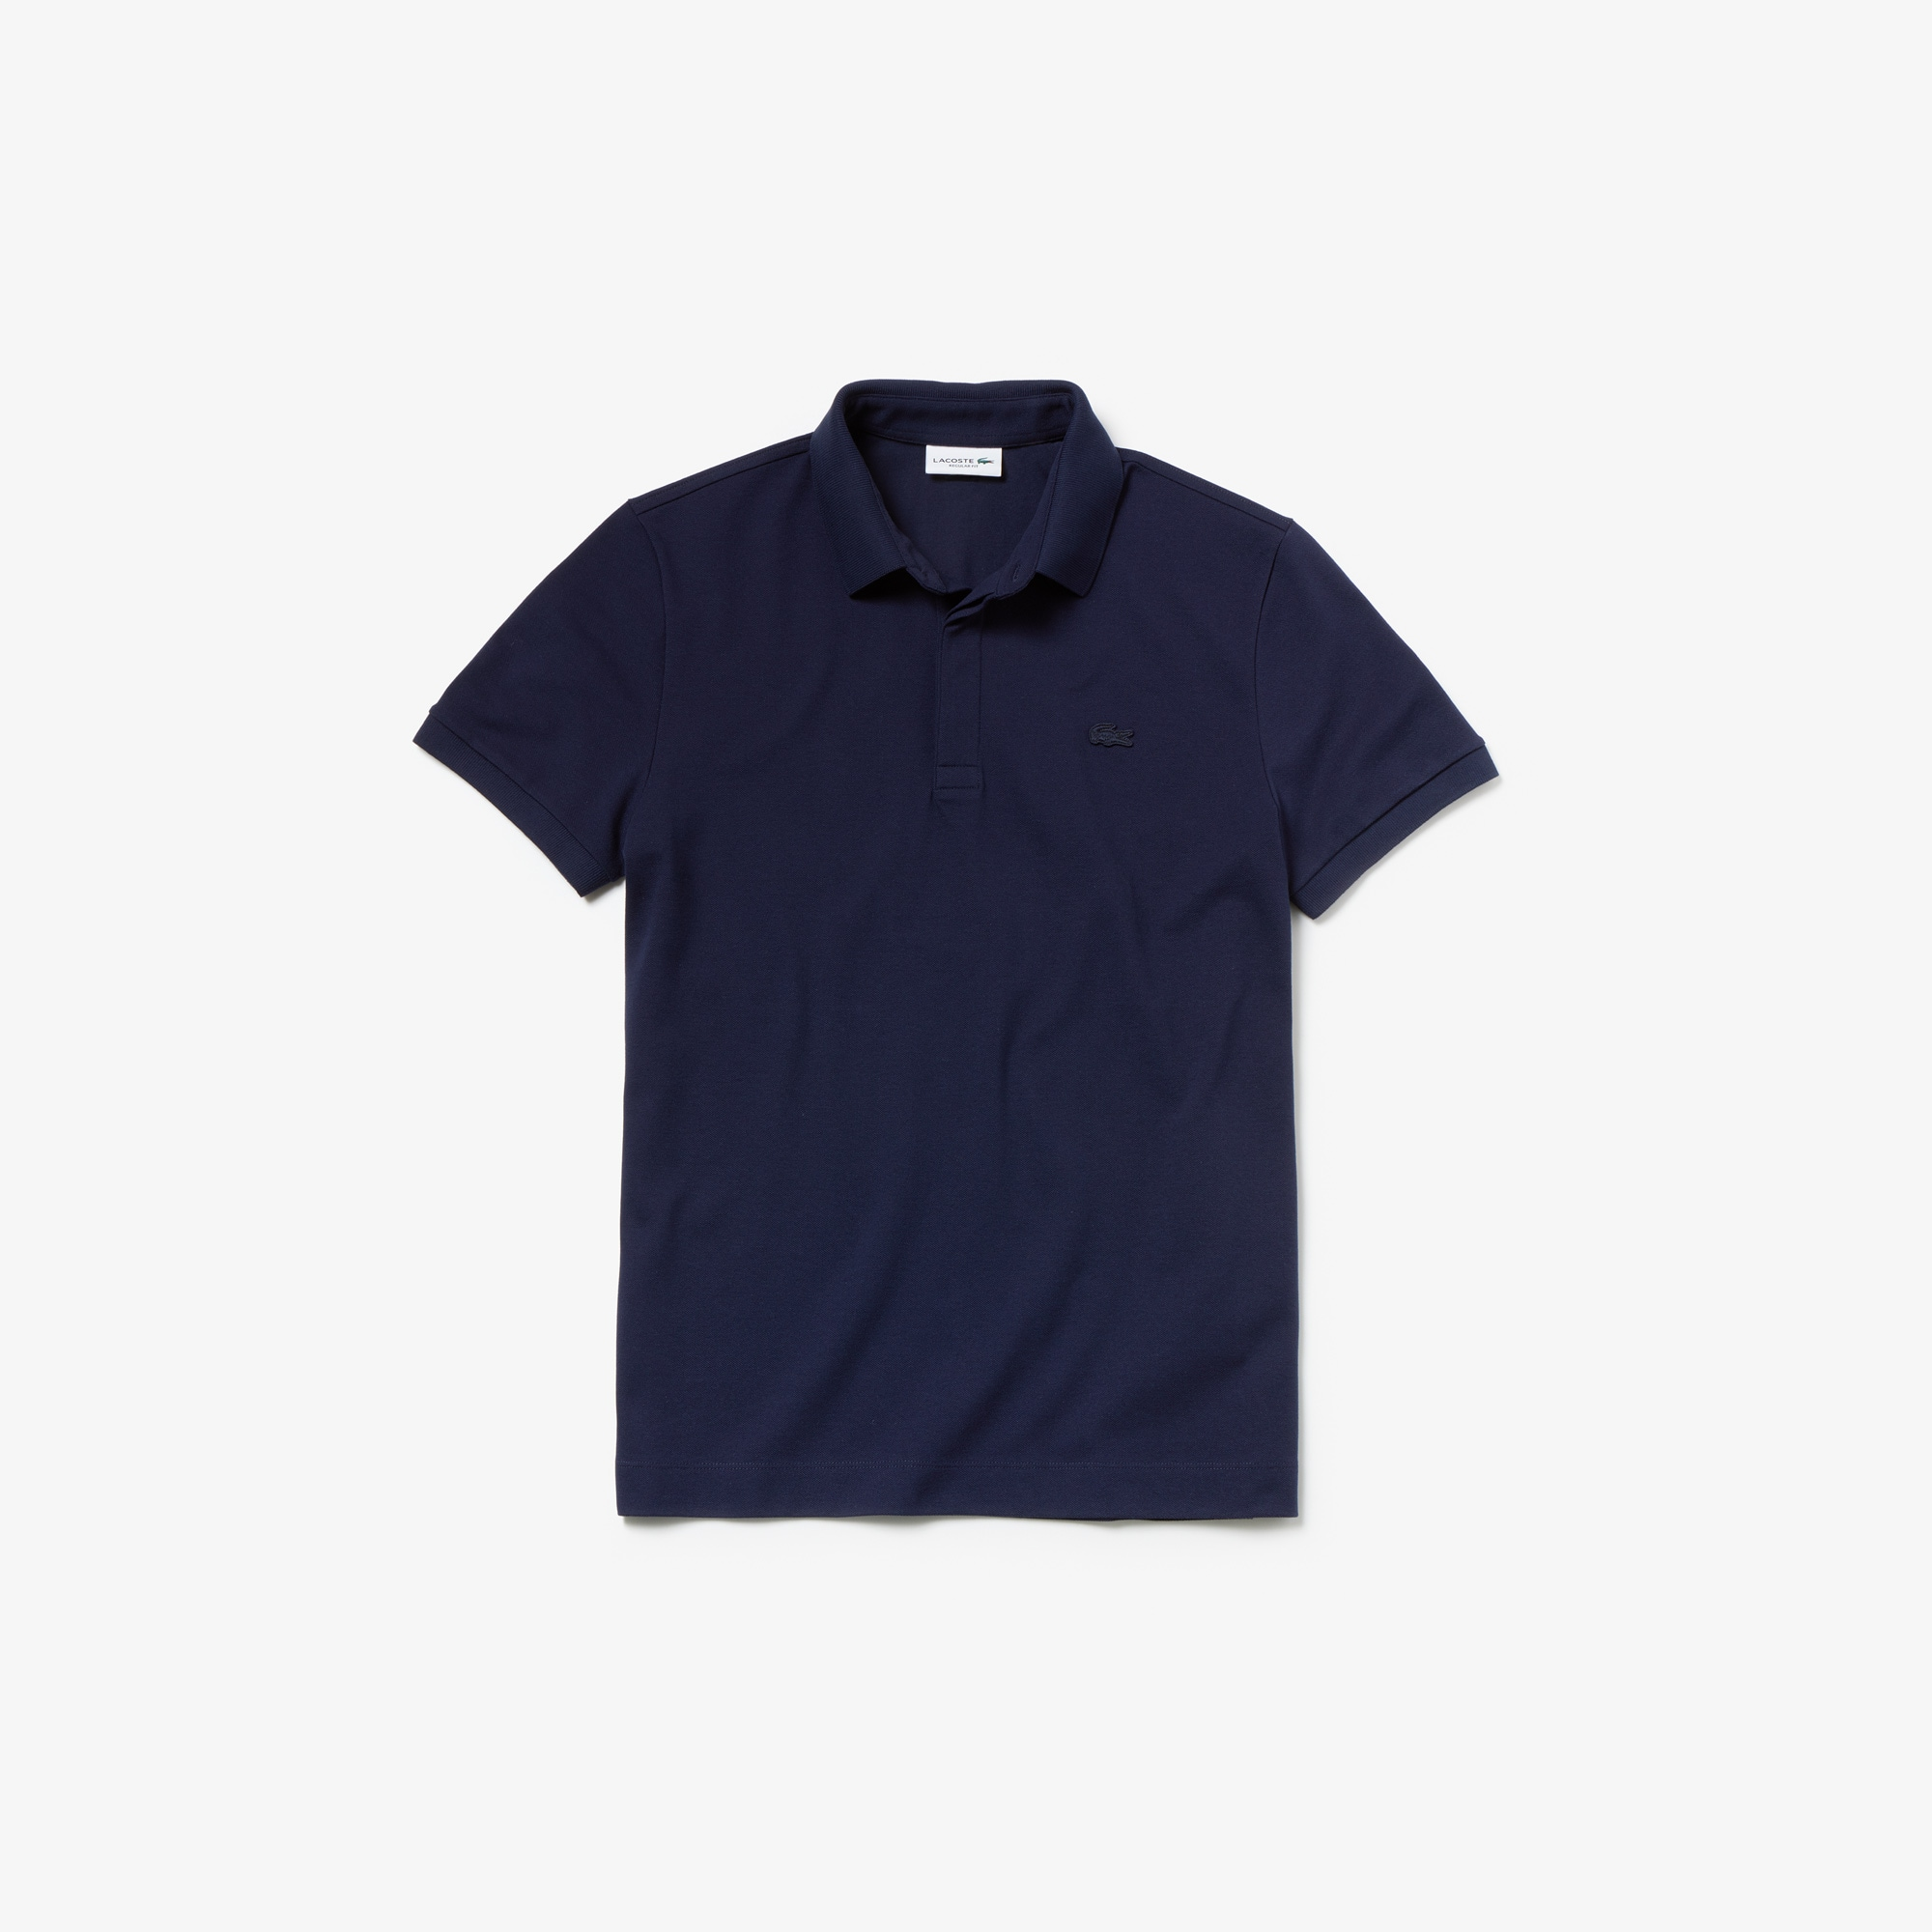 Lacoste - Paris Polo regular fit Lacoste en piqué de coton stretch - 4